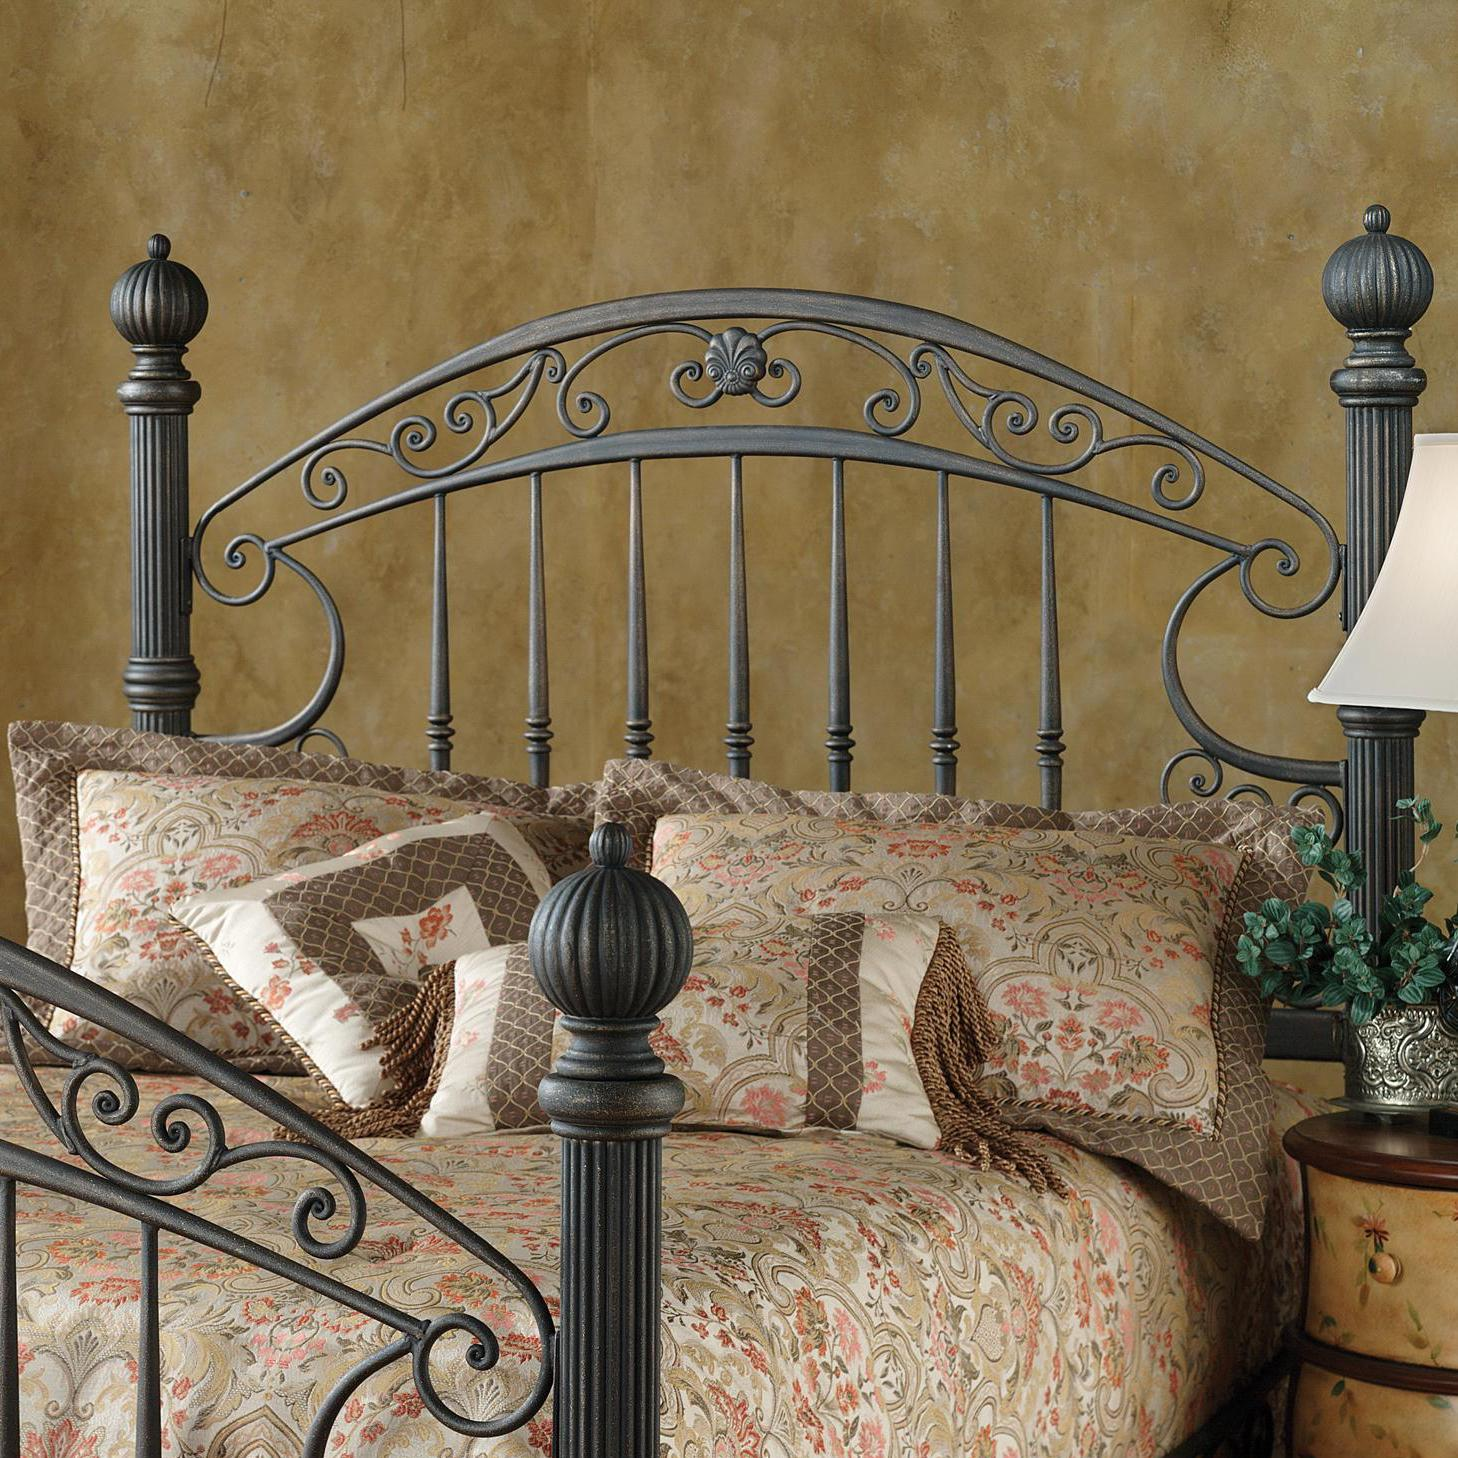 Metal Beds King Chesapeake Headboard Grill  by Hillsdale at Steger's Furniture